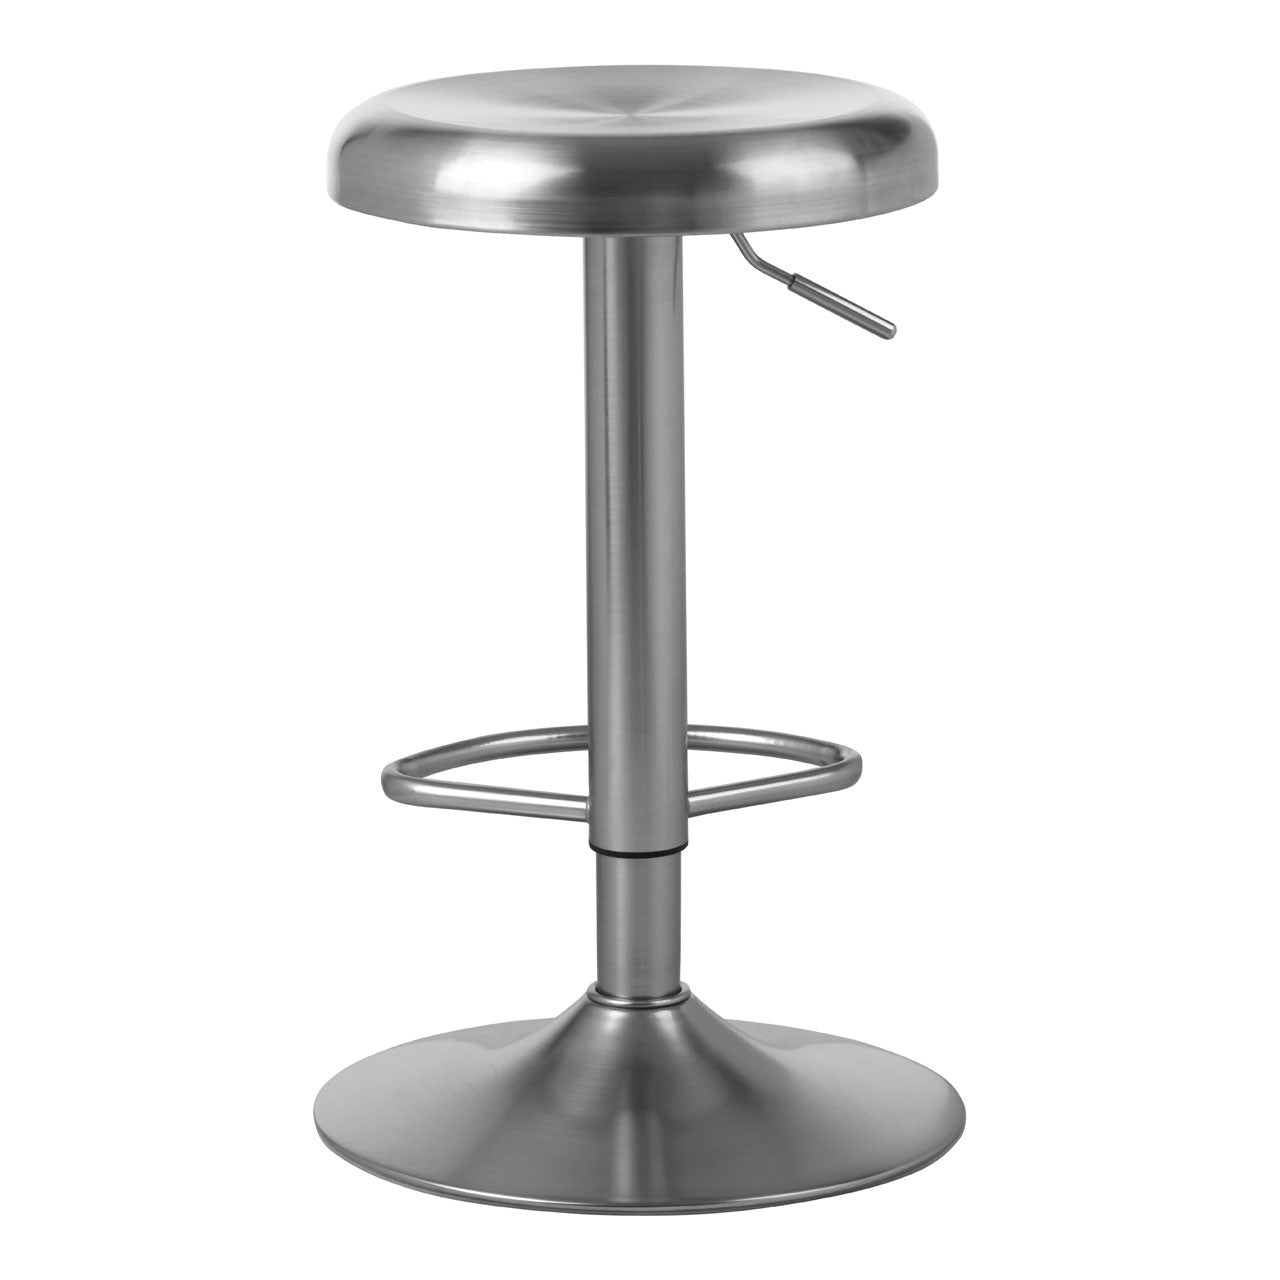 Stockholm Stainless Steel Bar Stool Seat